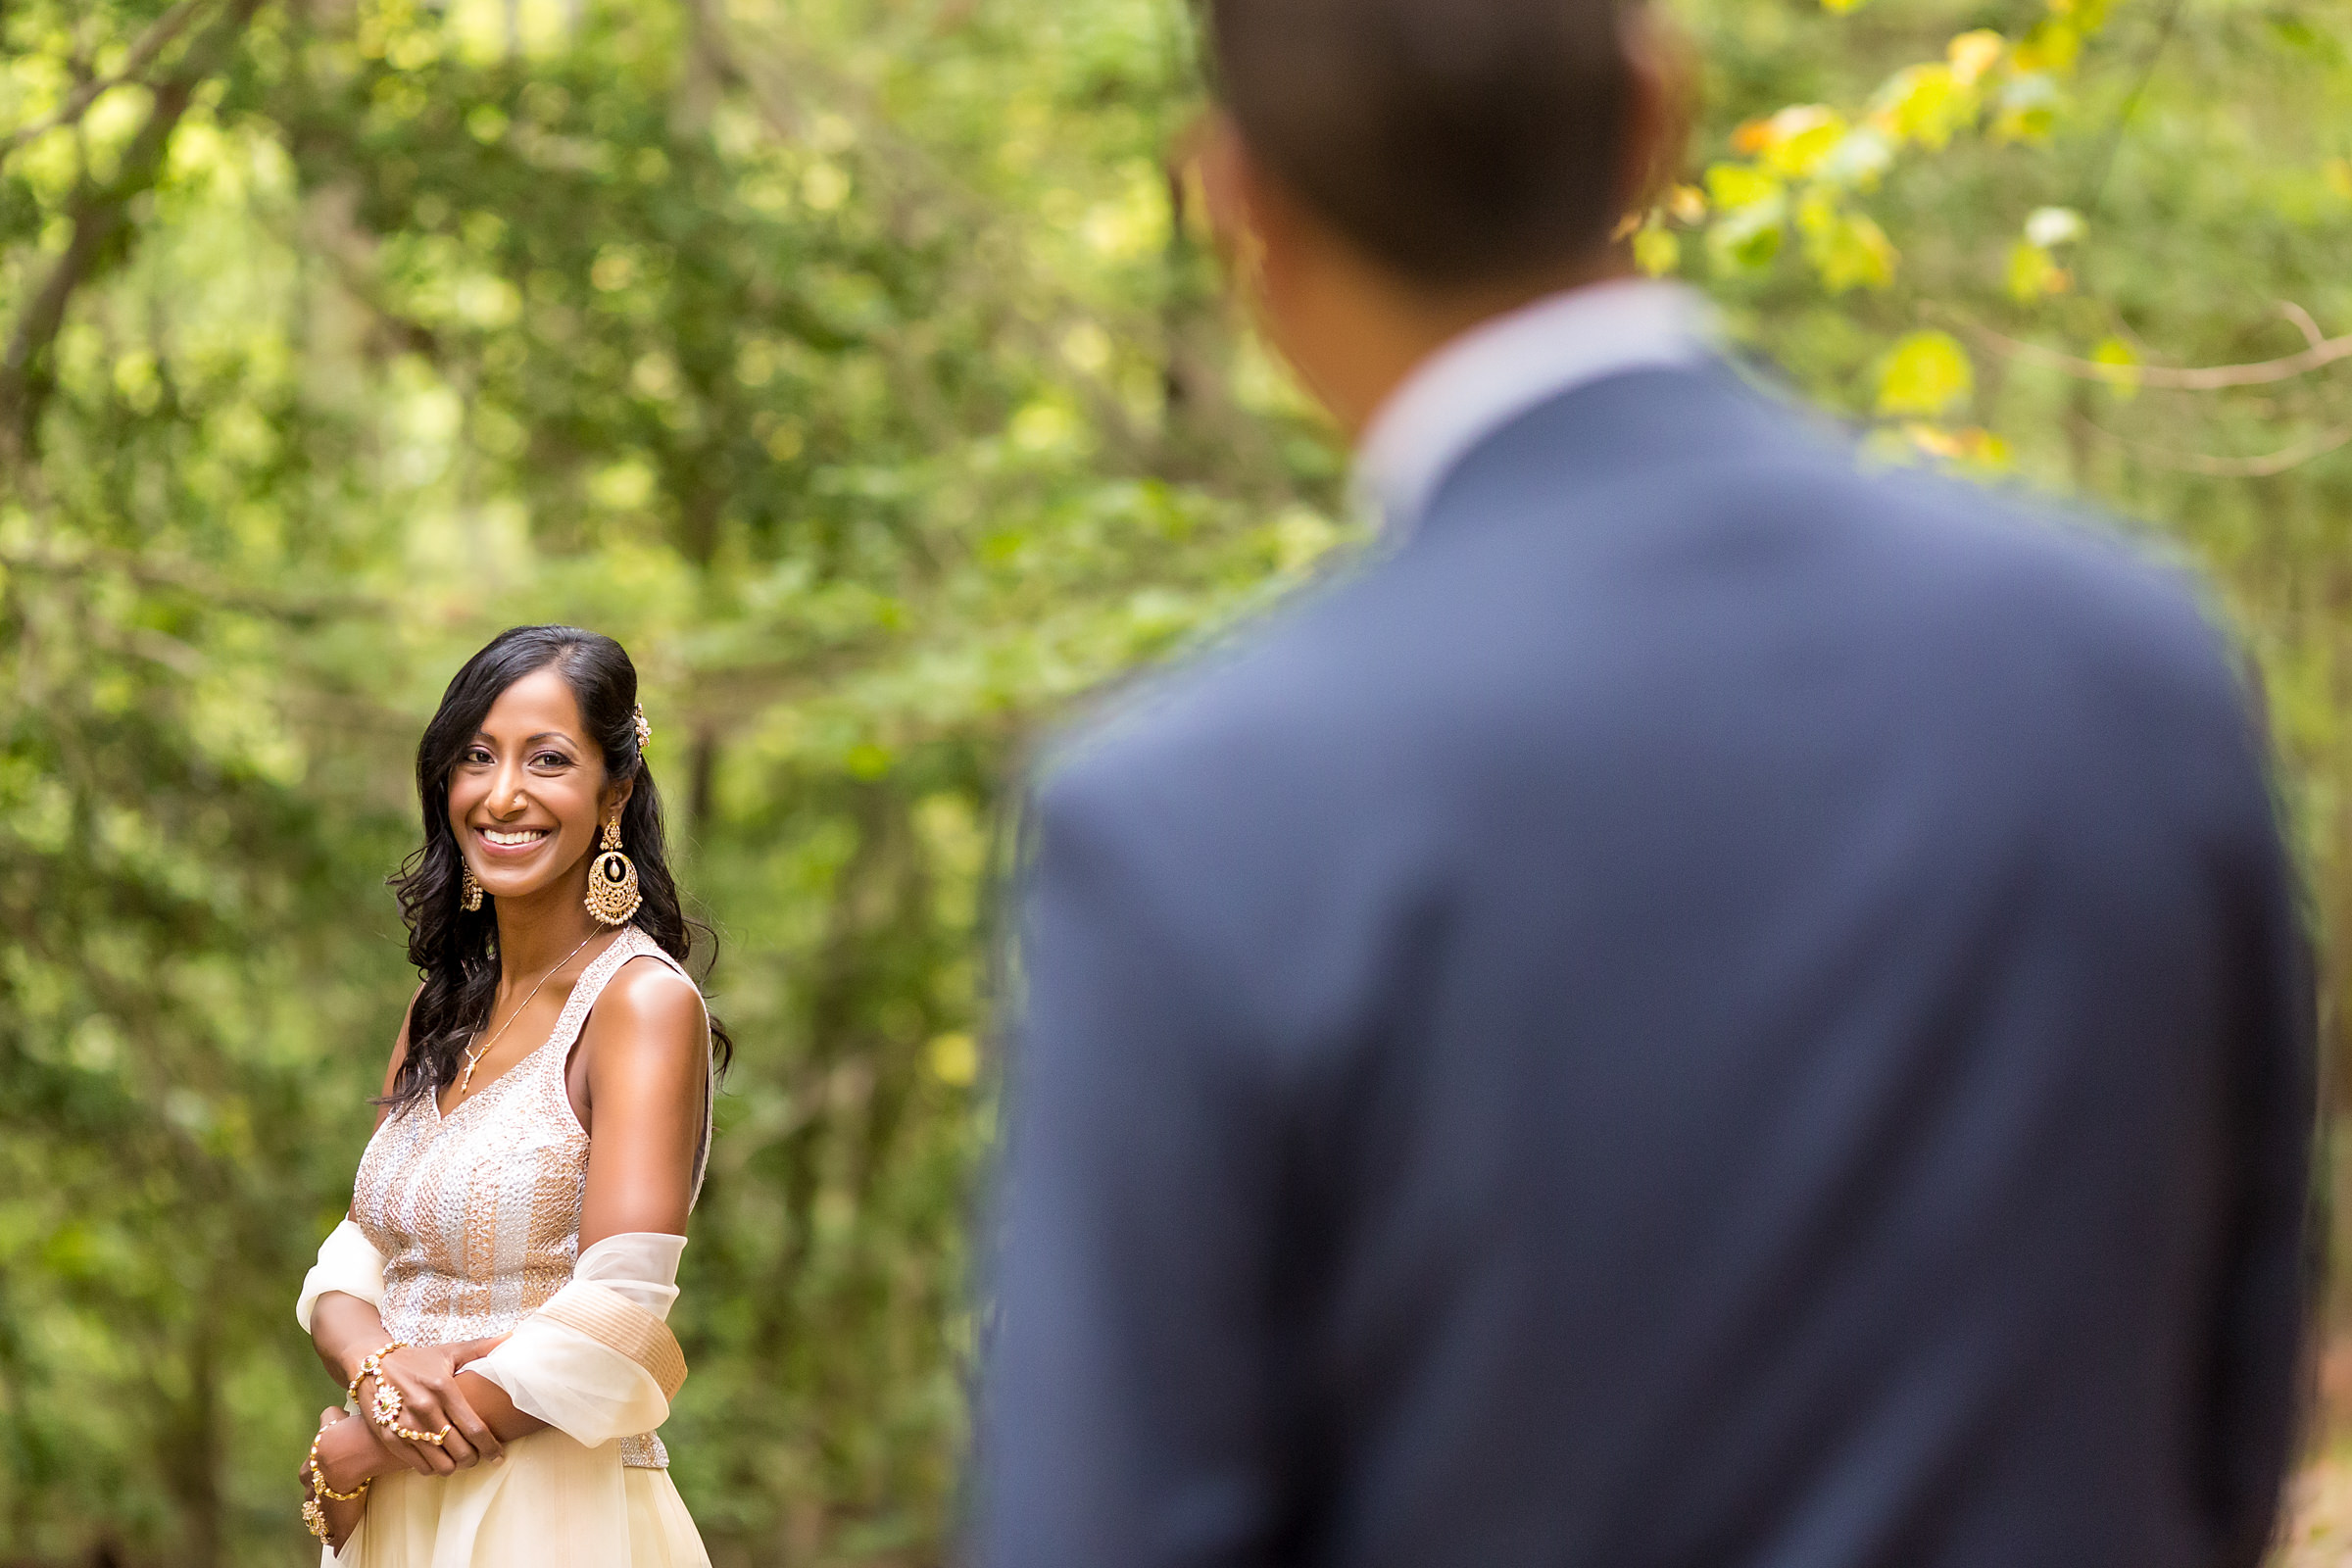 Bride against foliage with groom looking on - photo by Procopio Photography